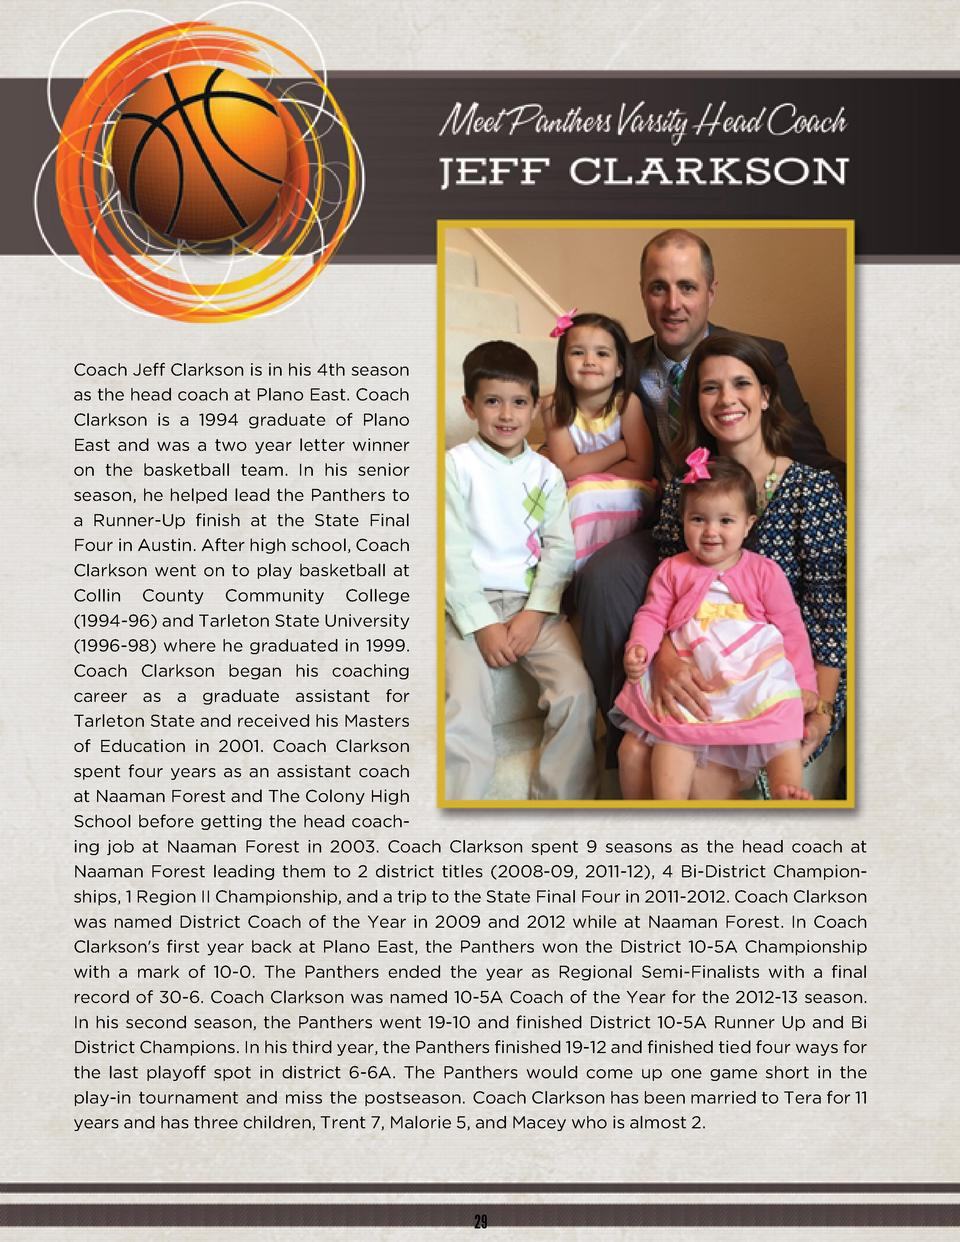 Coach Jeff Clarkson is in his 4th season as the head coach at Plano East. Coach Clarkson is a 1994 graduate of Plano East ...